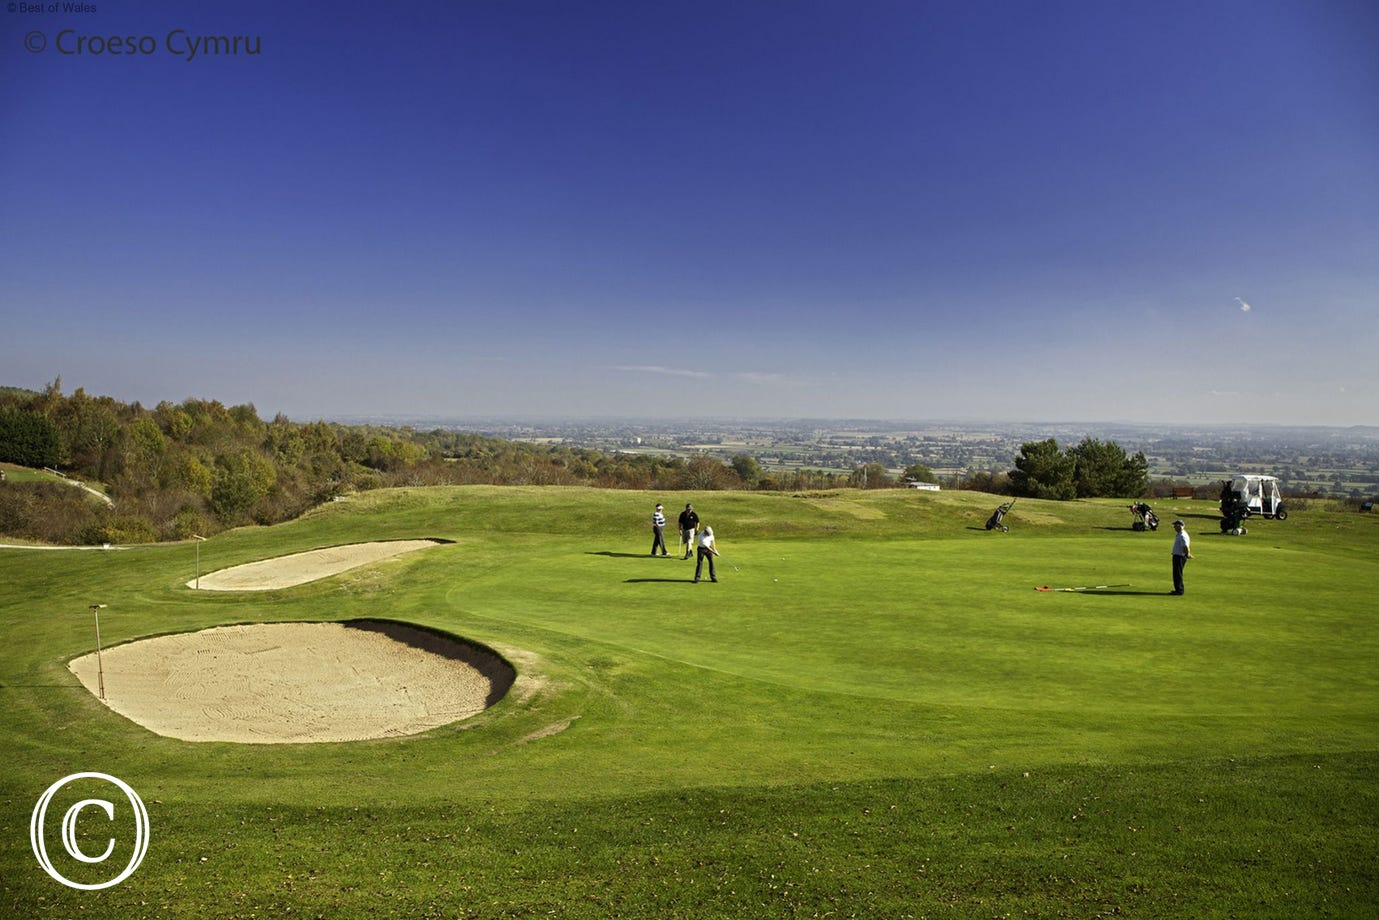 Welshpool Golf Club - 18 hole golf course just 6 miles from the cottage